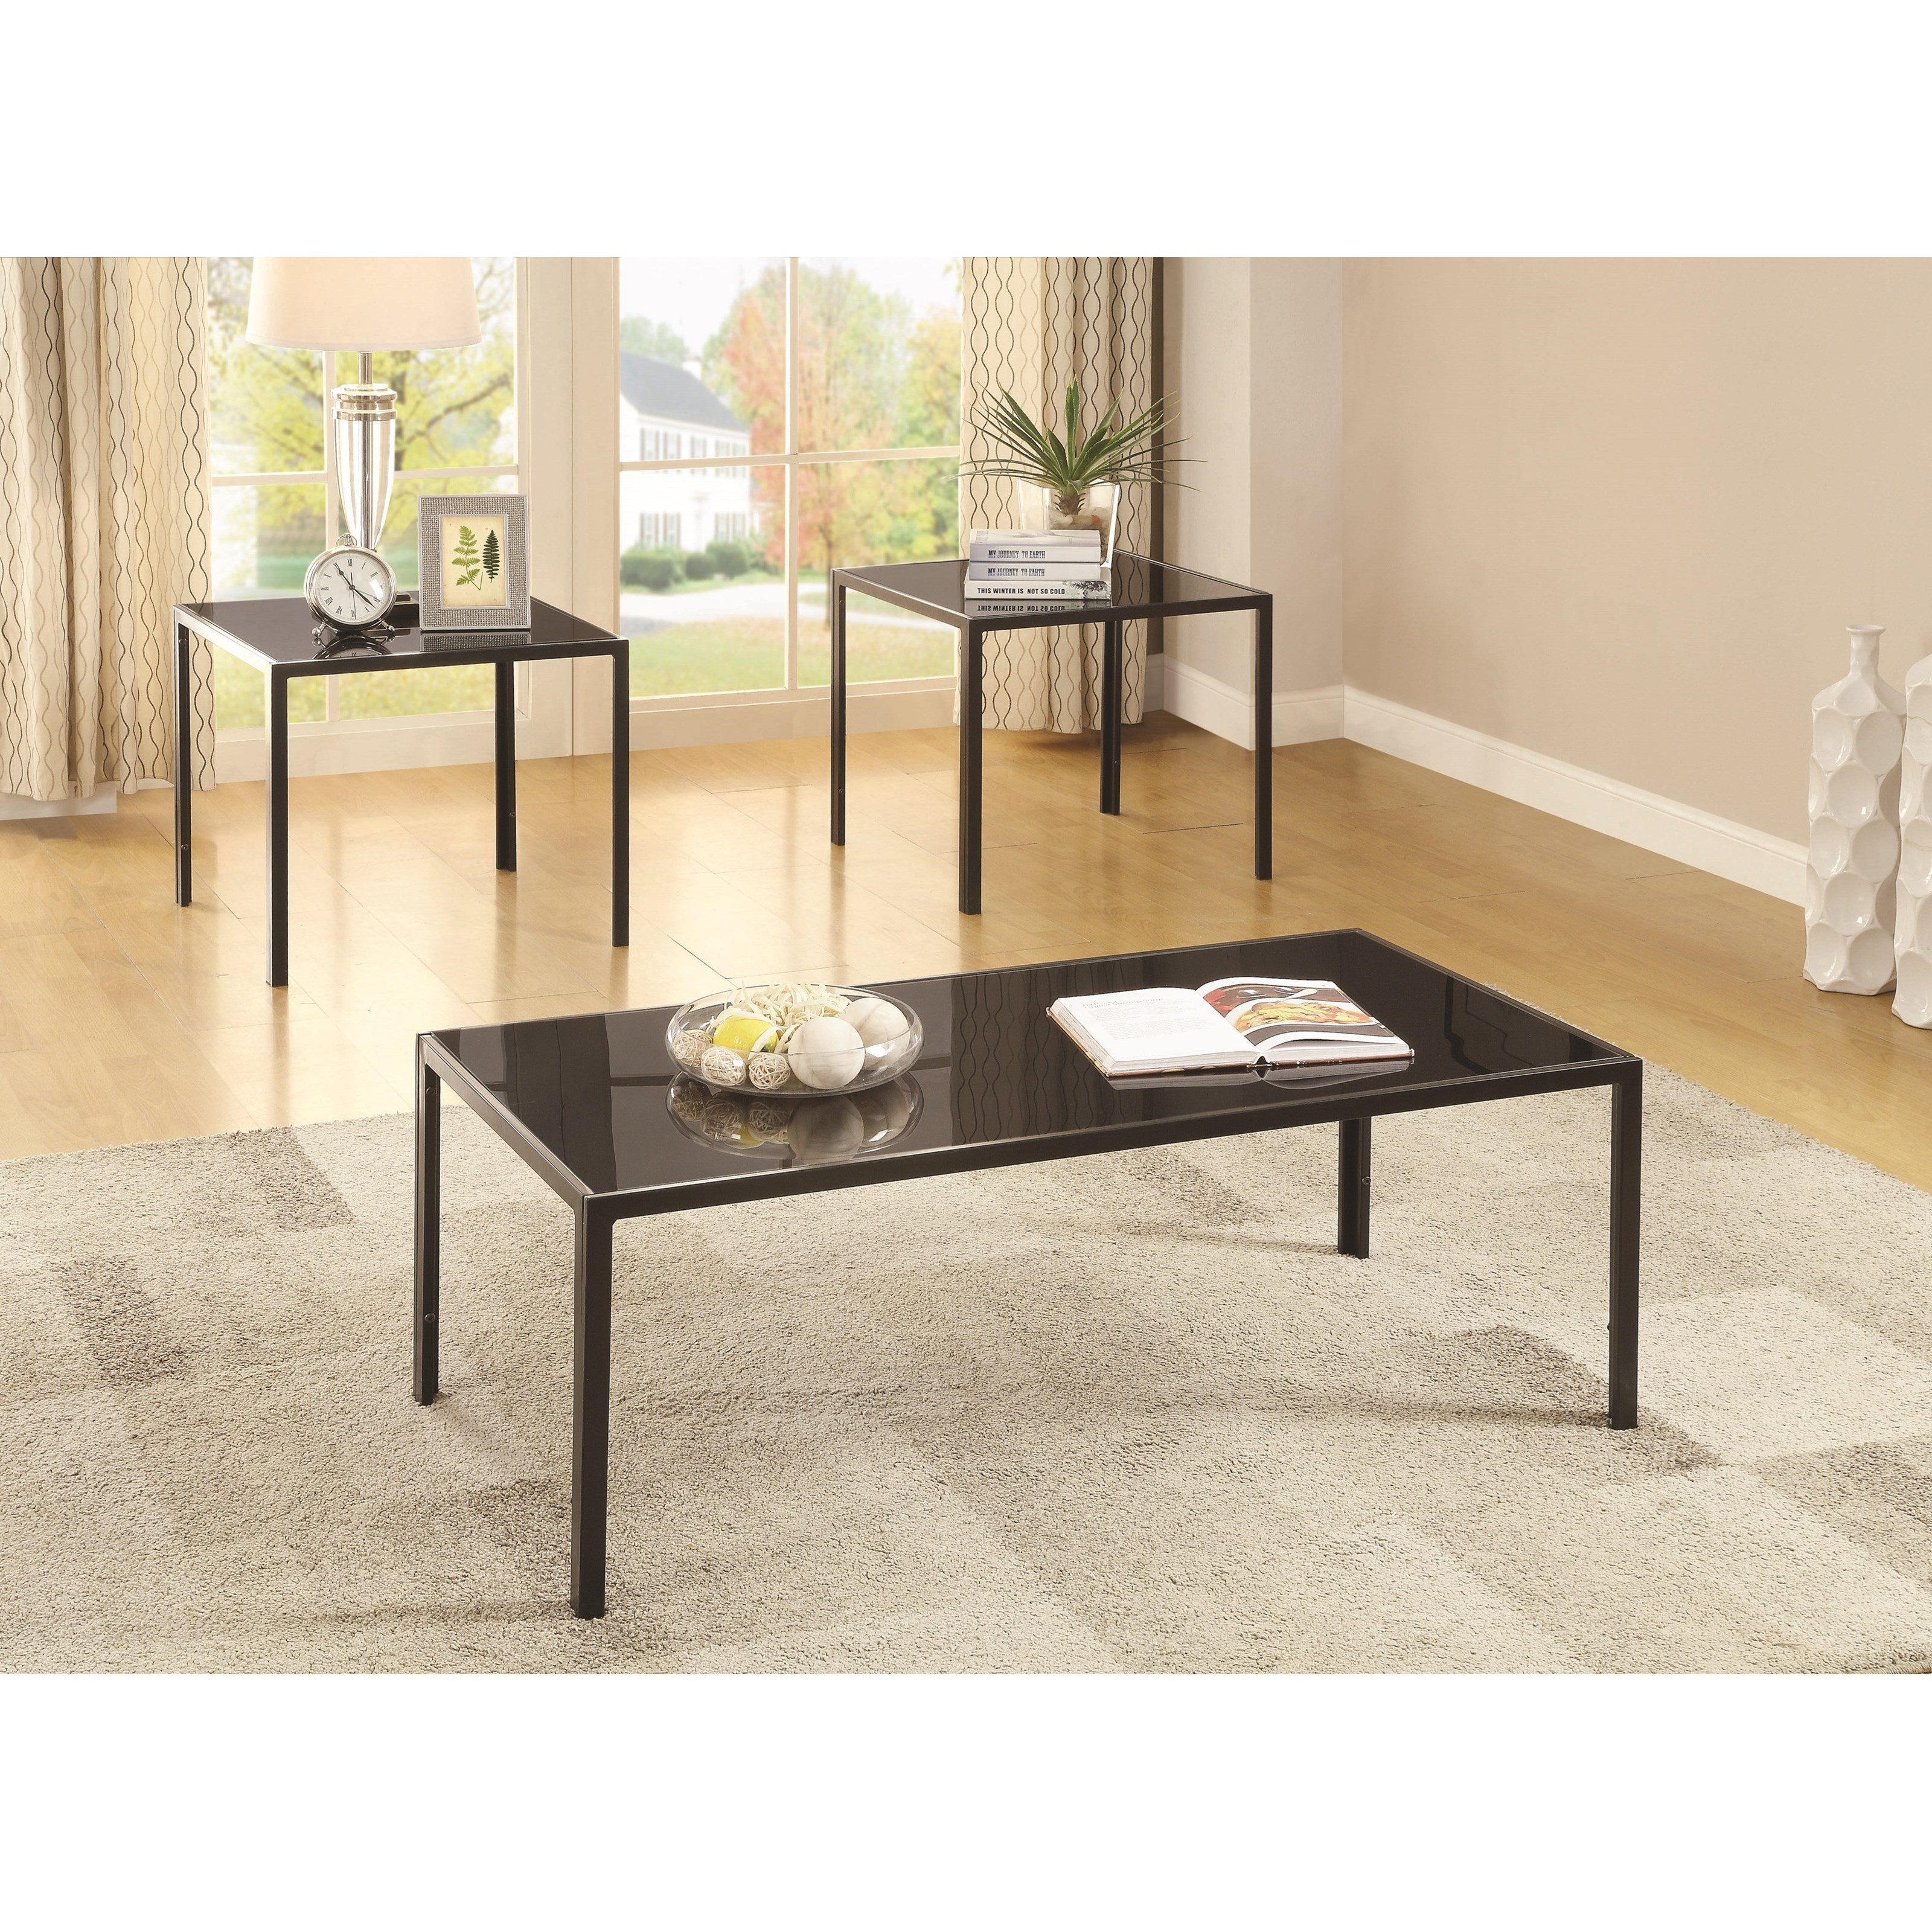 Occasional Table Sets 3 Piece Occasional Set by Coaster at Standard Furniture